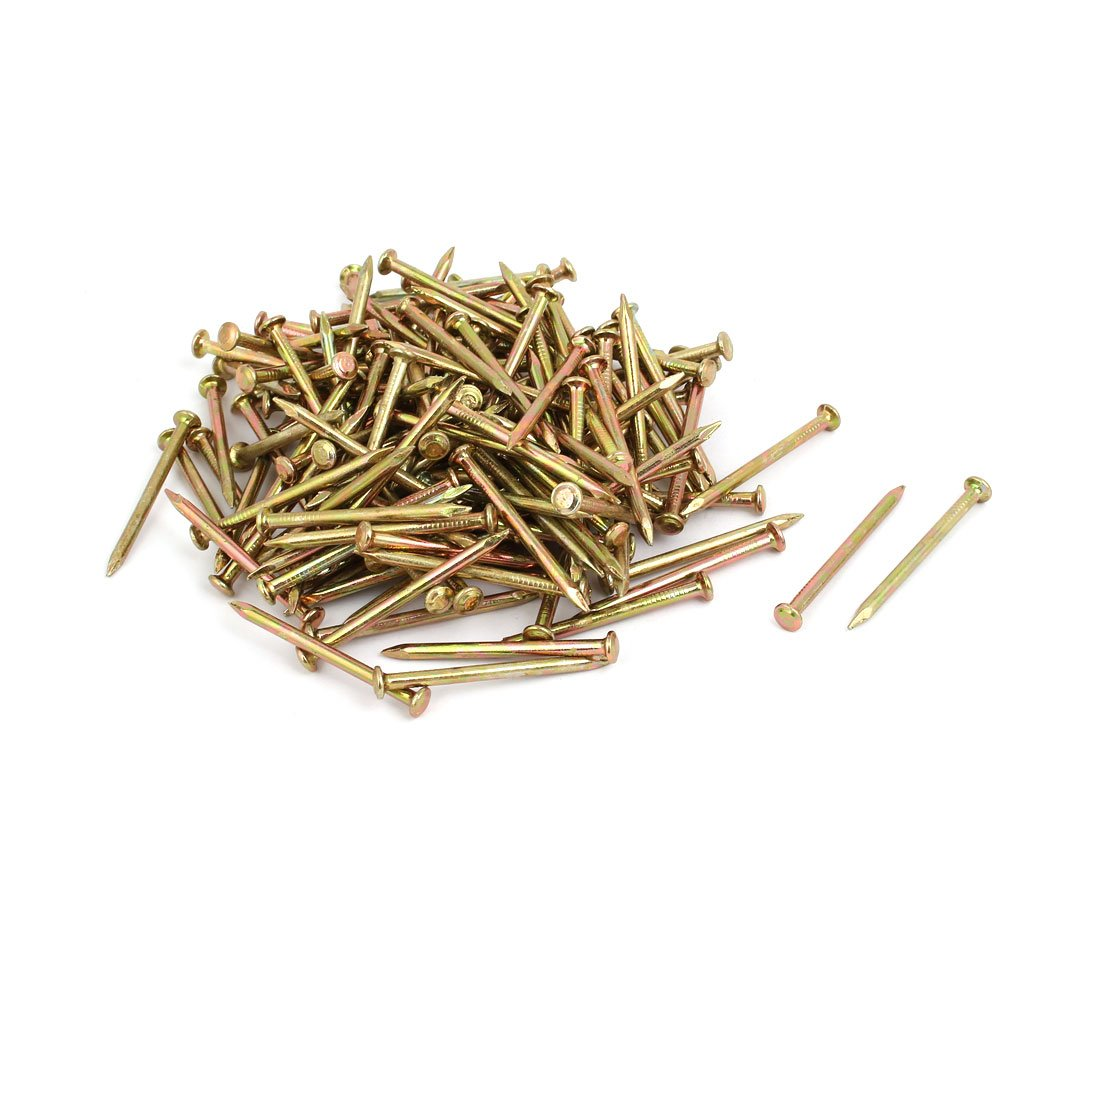 uxcell 150pcs 50mm Length Steel Point Tip Cement Nail Bronze Tone